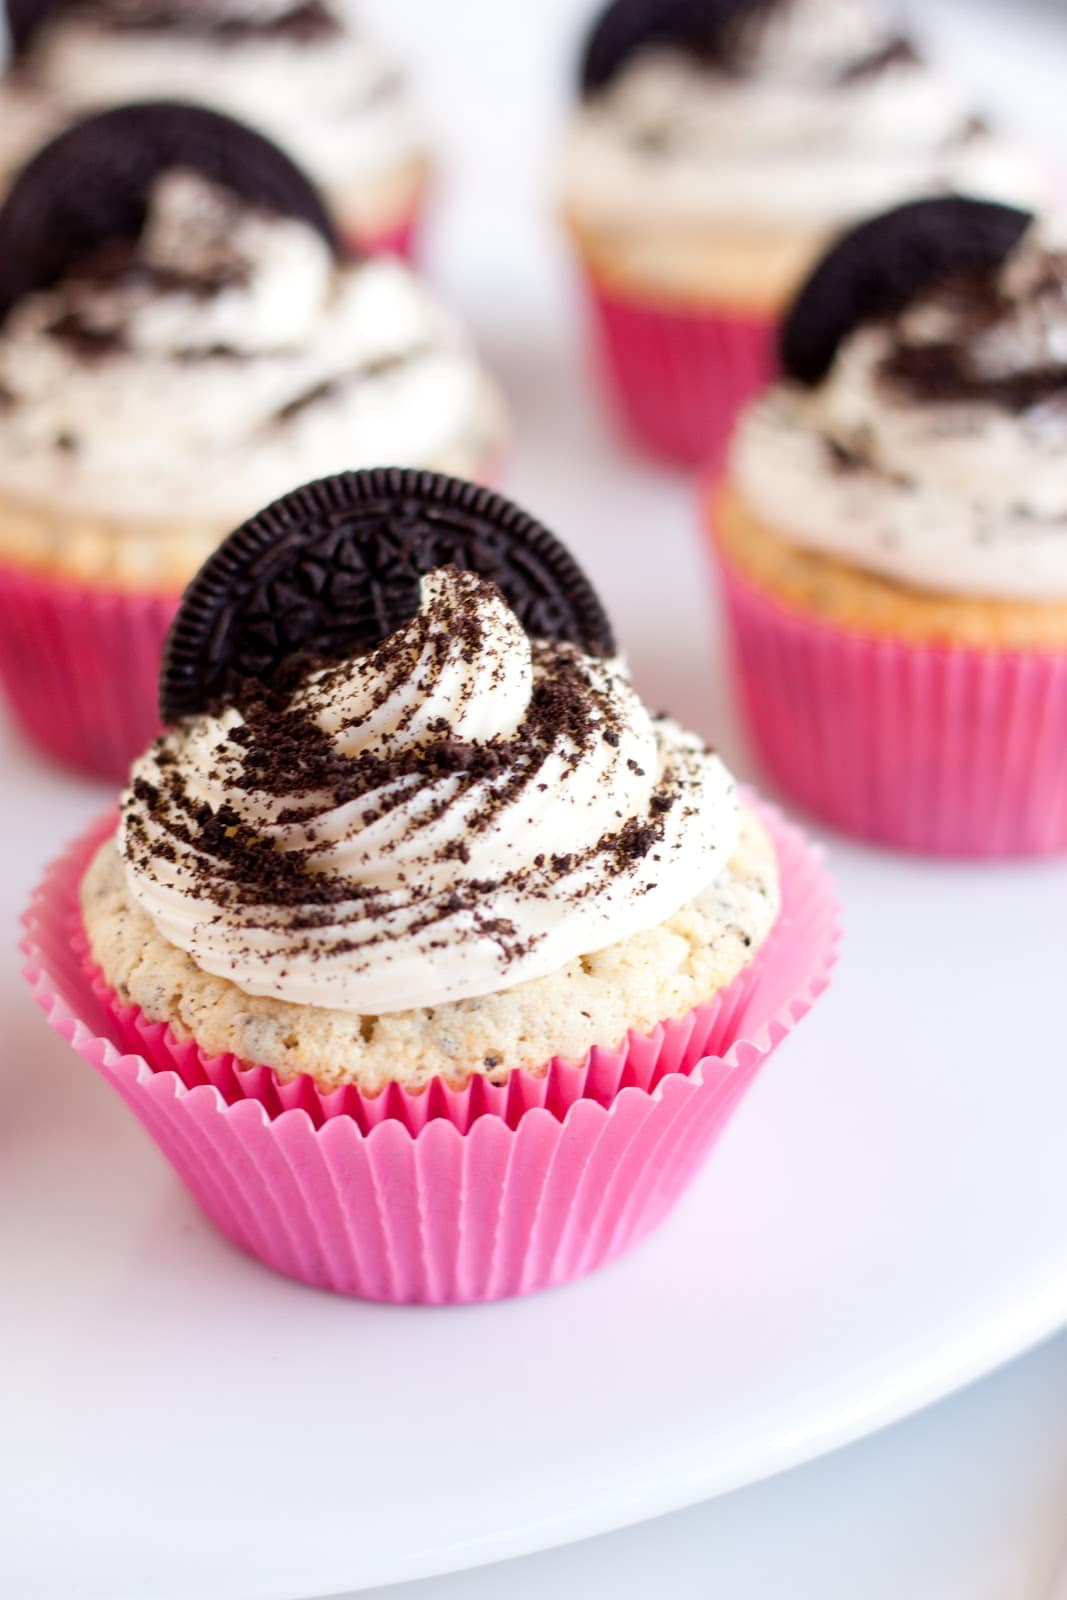 Cookies and Cream Cupcakes - Cooking Classy